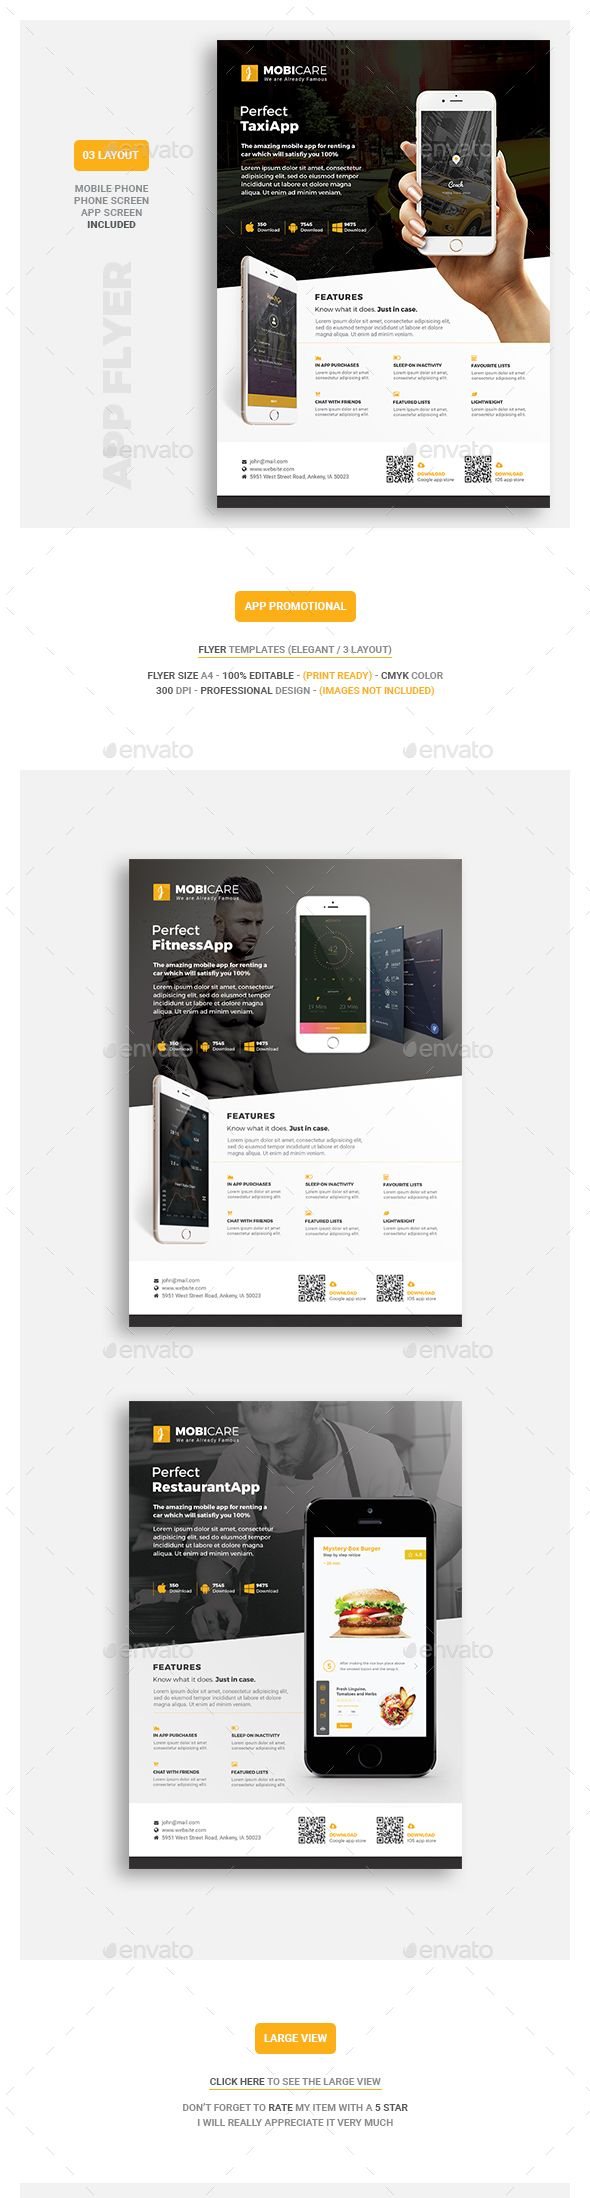 #Mobile #App Flyer - Commerce #Flyers Download here: https://graphicriver.net/item/mobile-app-flyer/18543396?ref=alena994